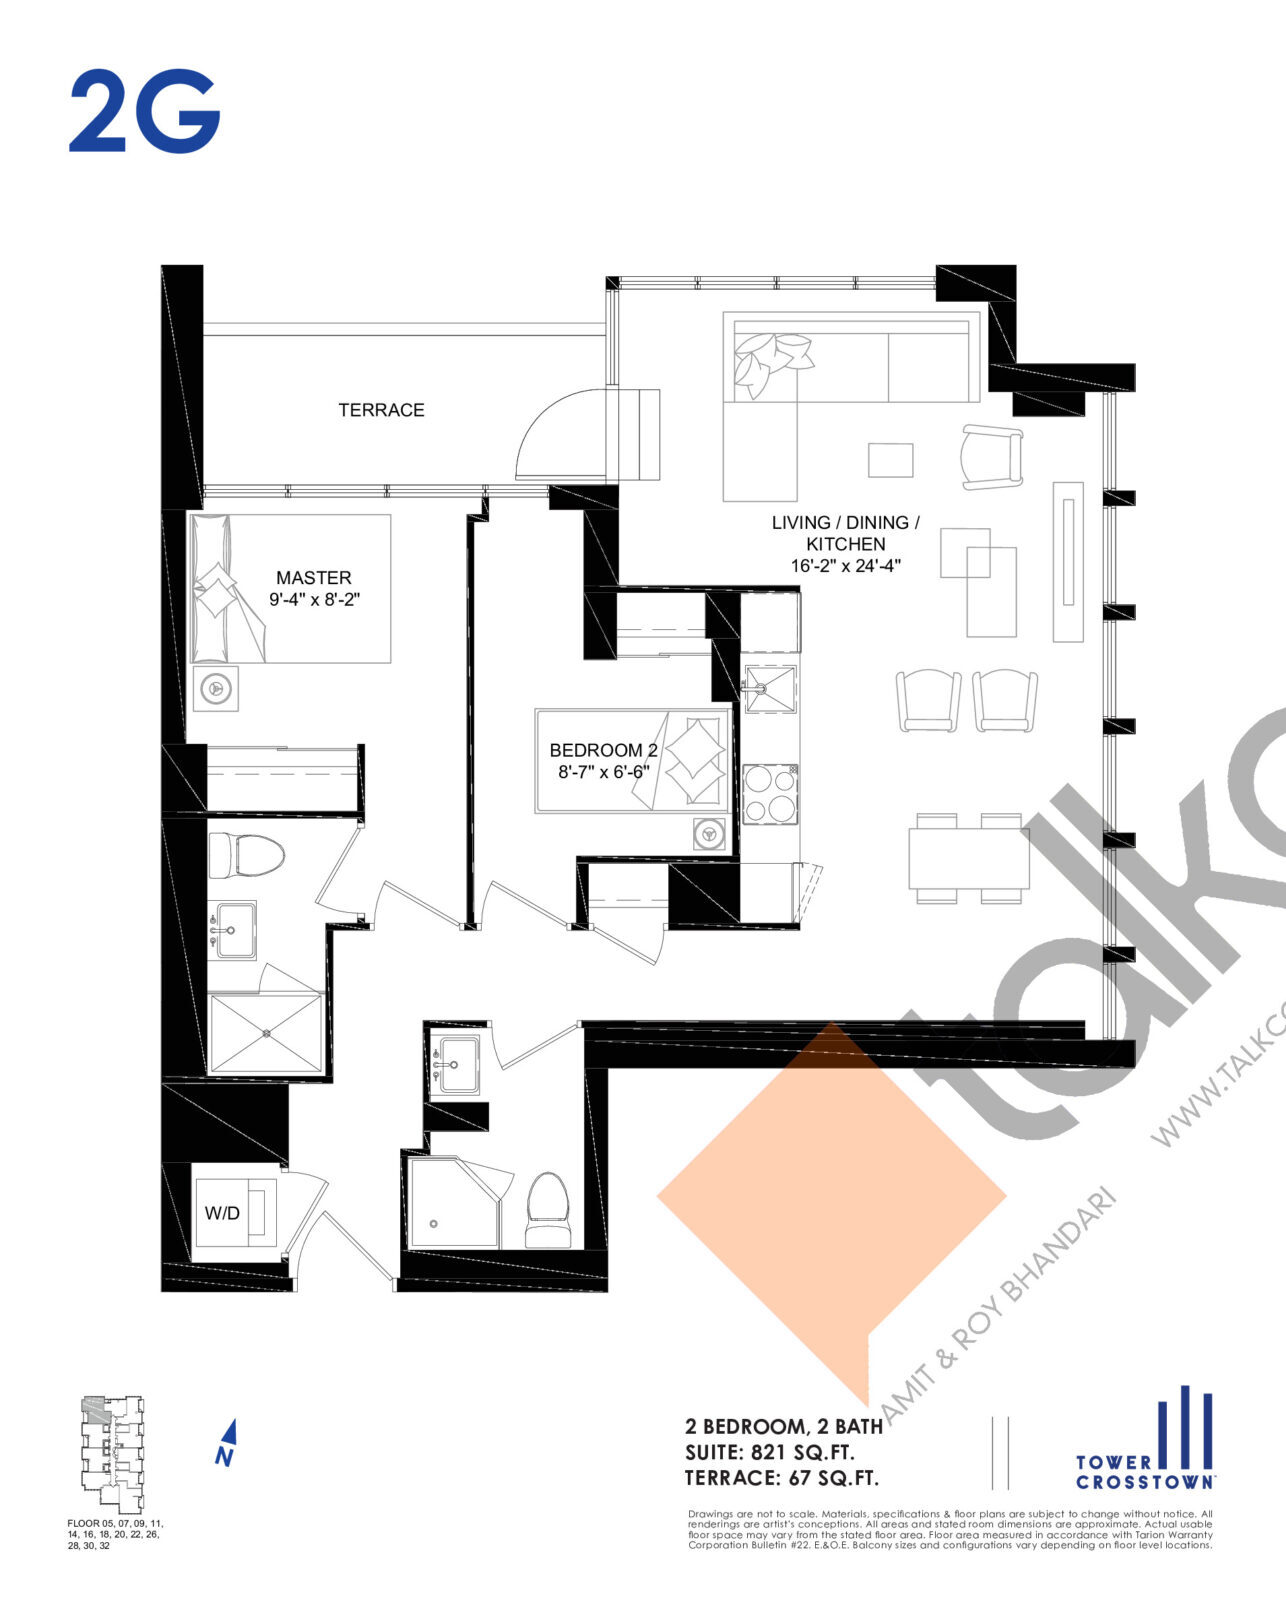 2G Floor Plan at Crosstown Tower 3 Condos - 821 sq.ft